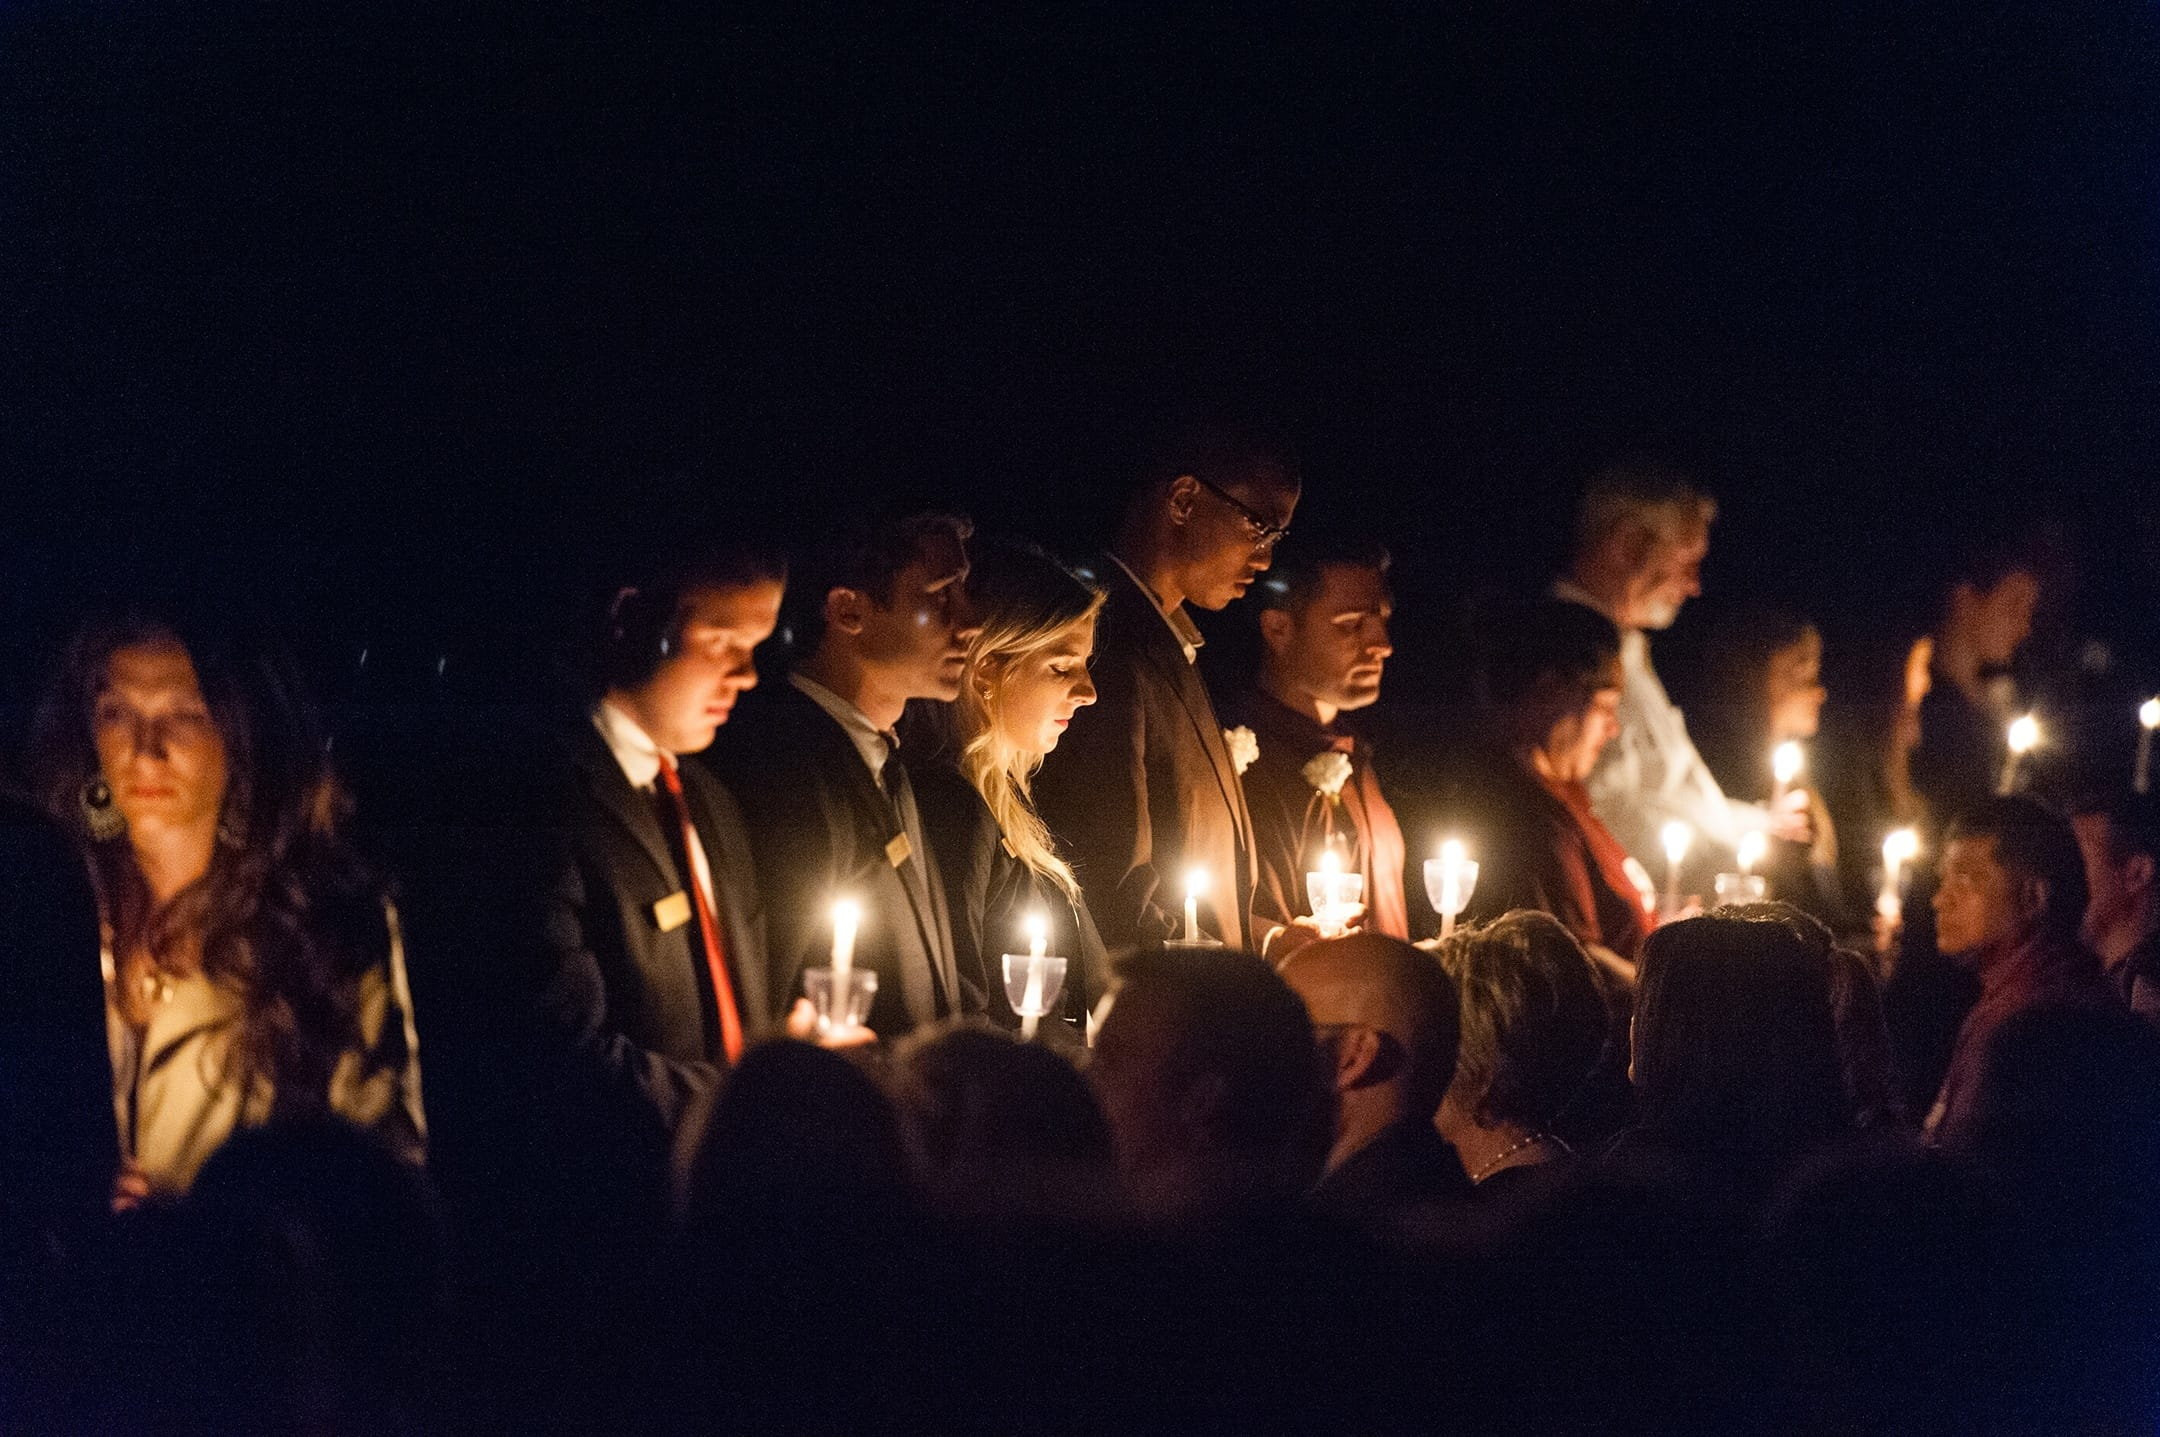 people holding candles at muster - Vertraulichkeitserklarung Muster